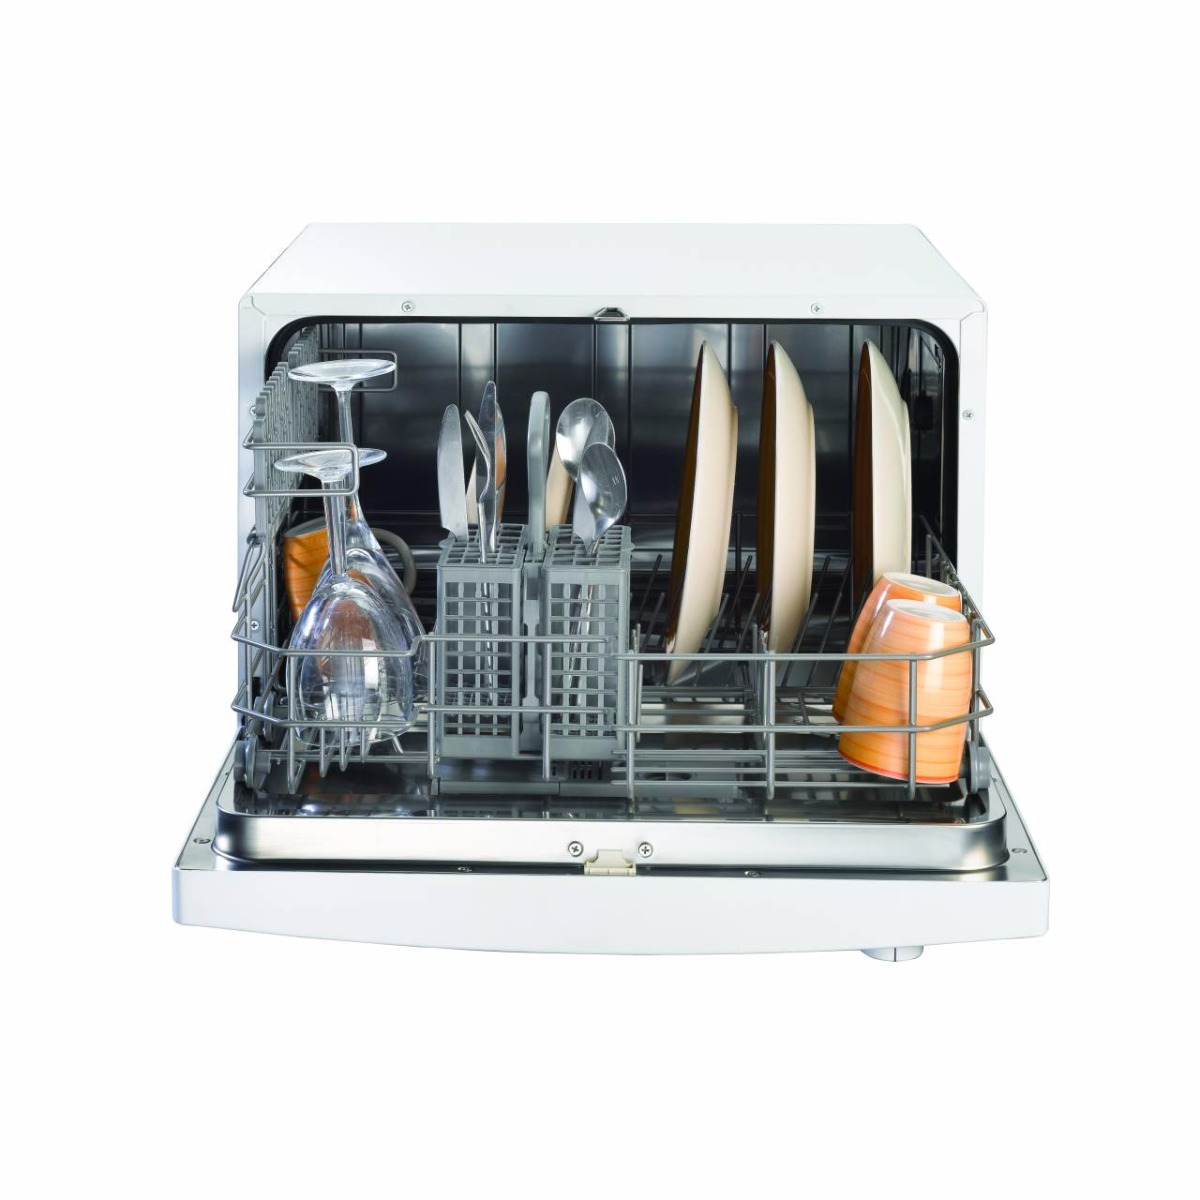 Indesit ICD661UK, 55cm, 6 Place, Table Top Dishwasher, White